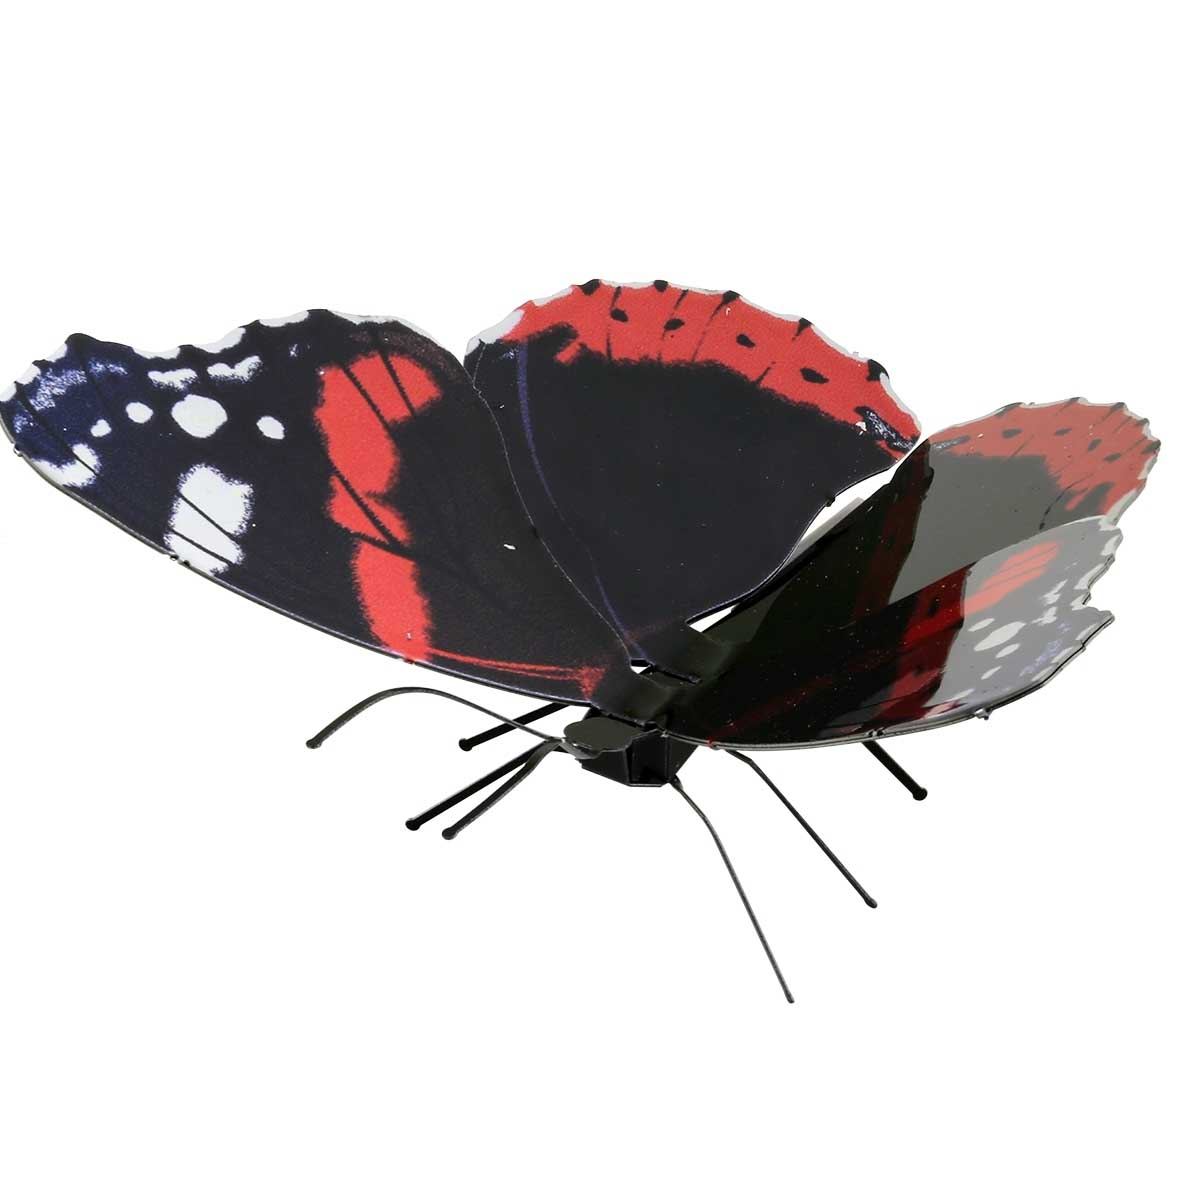 Red Admiral Butterflies and Insects 3D Puzzle